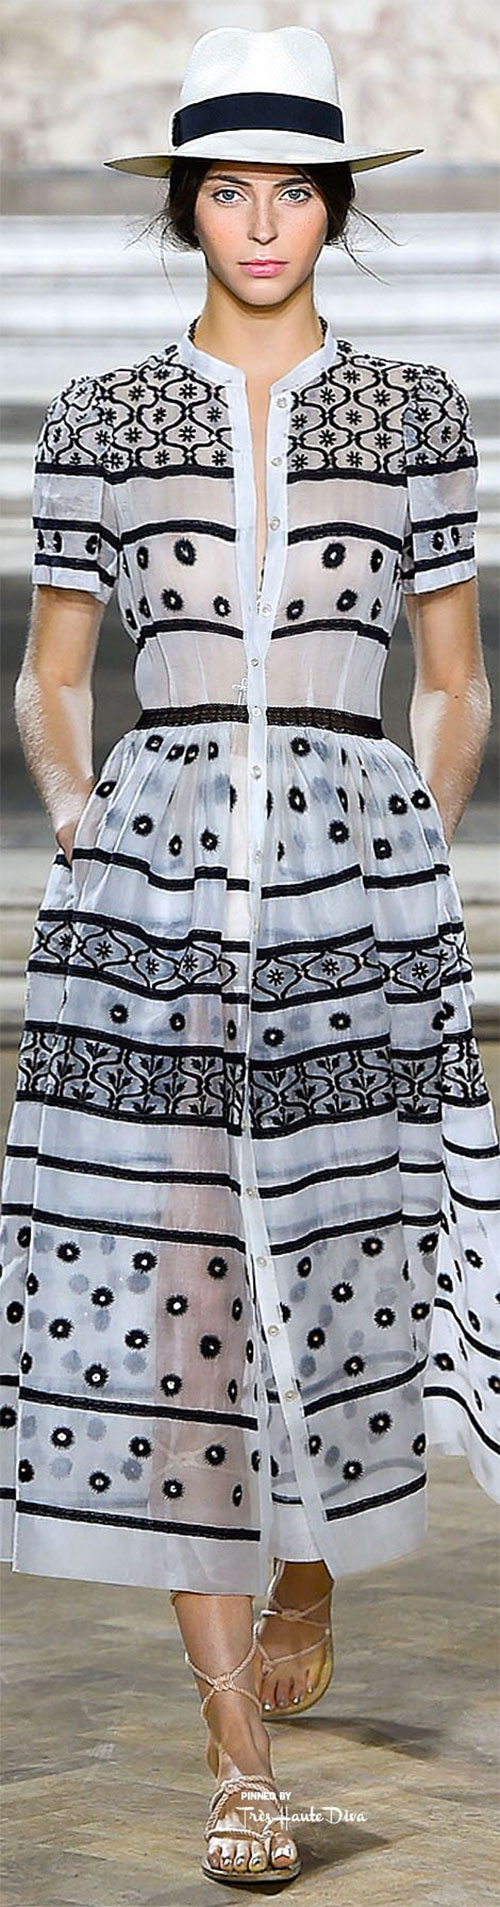 15-Latest-Spring-Fashion-Trends-Ideas-For-Girls-Women-2016-9